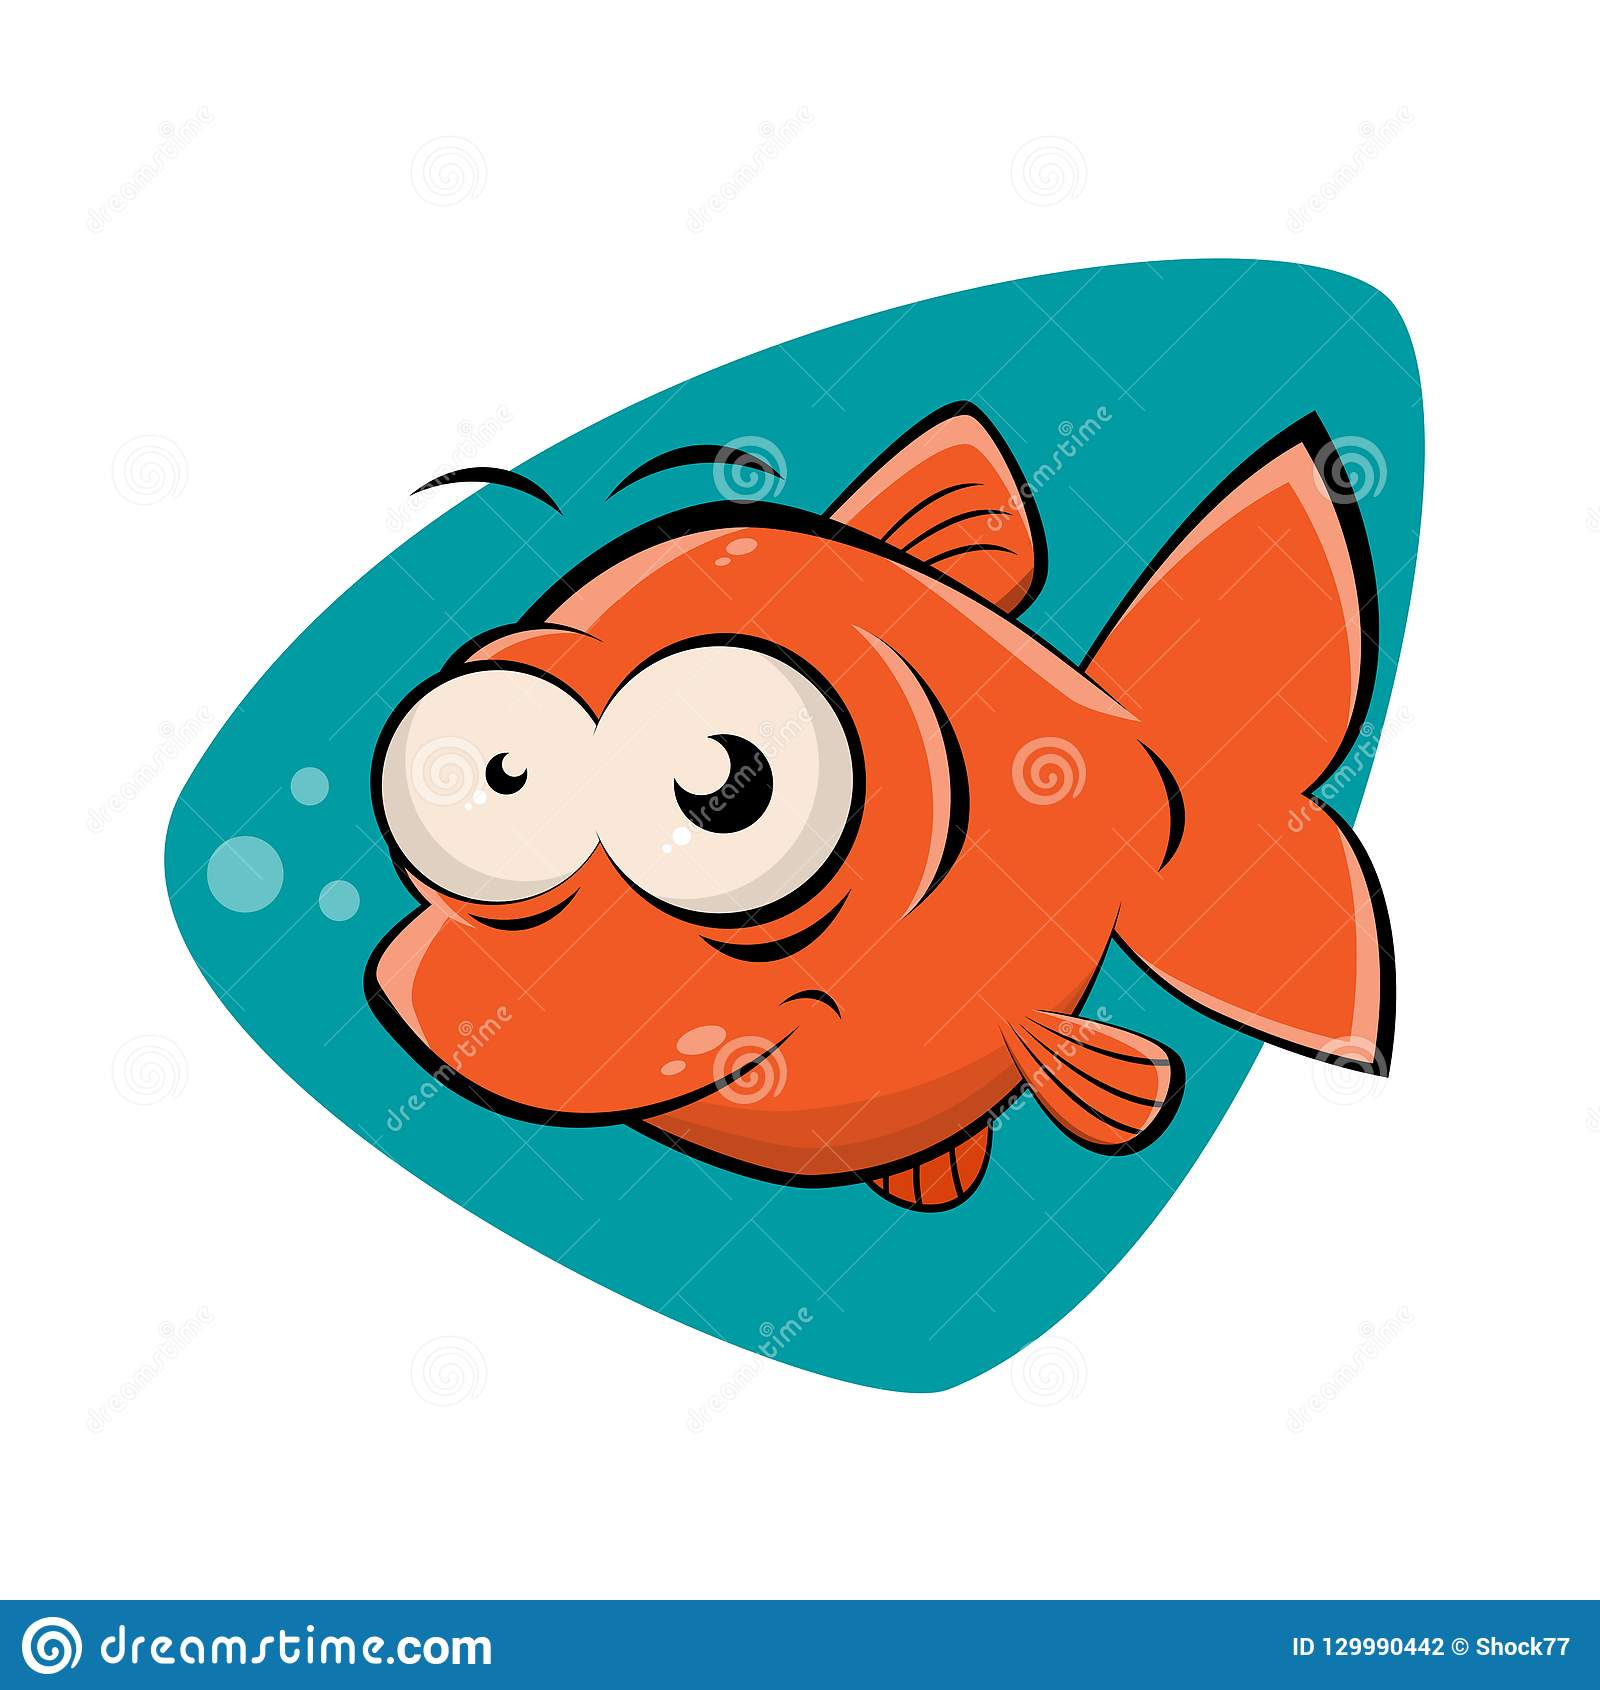 Funny Clipart Of A Smiling Fish Stock Vector Illustration Of Happy Swimming 129990442